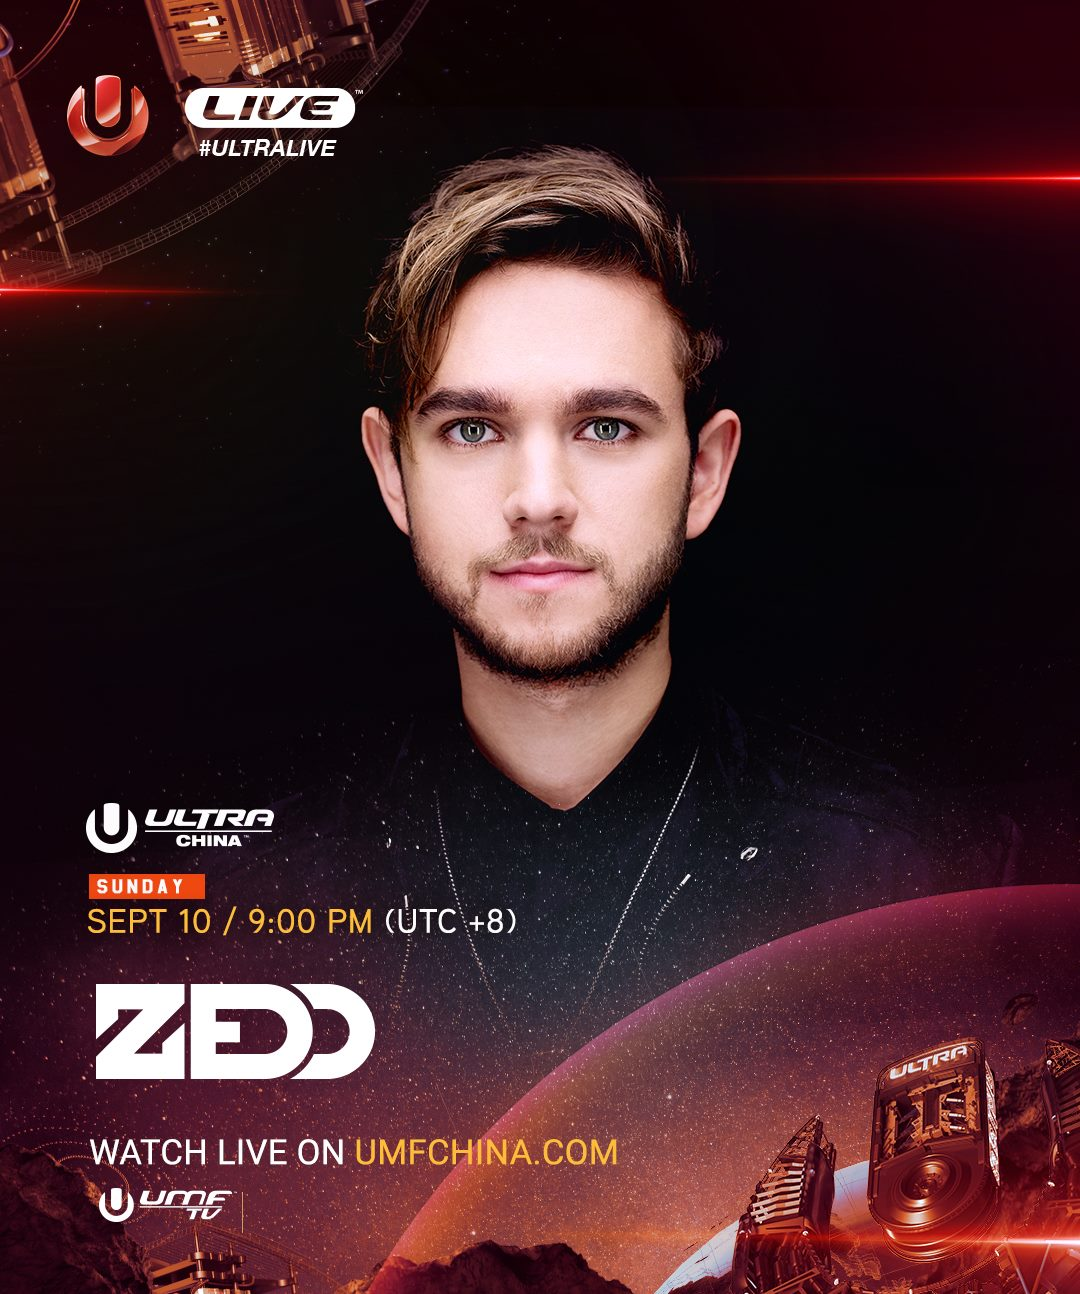 download → Zedd - live at Ultra Music Festival 2017 (China) - 10-Sep-2017